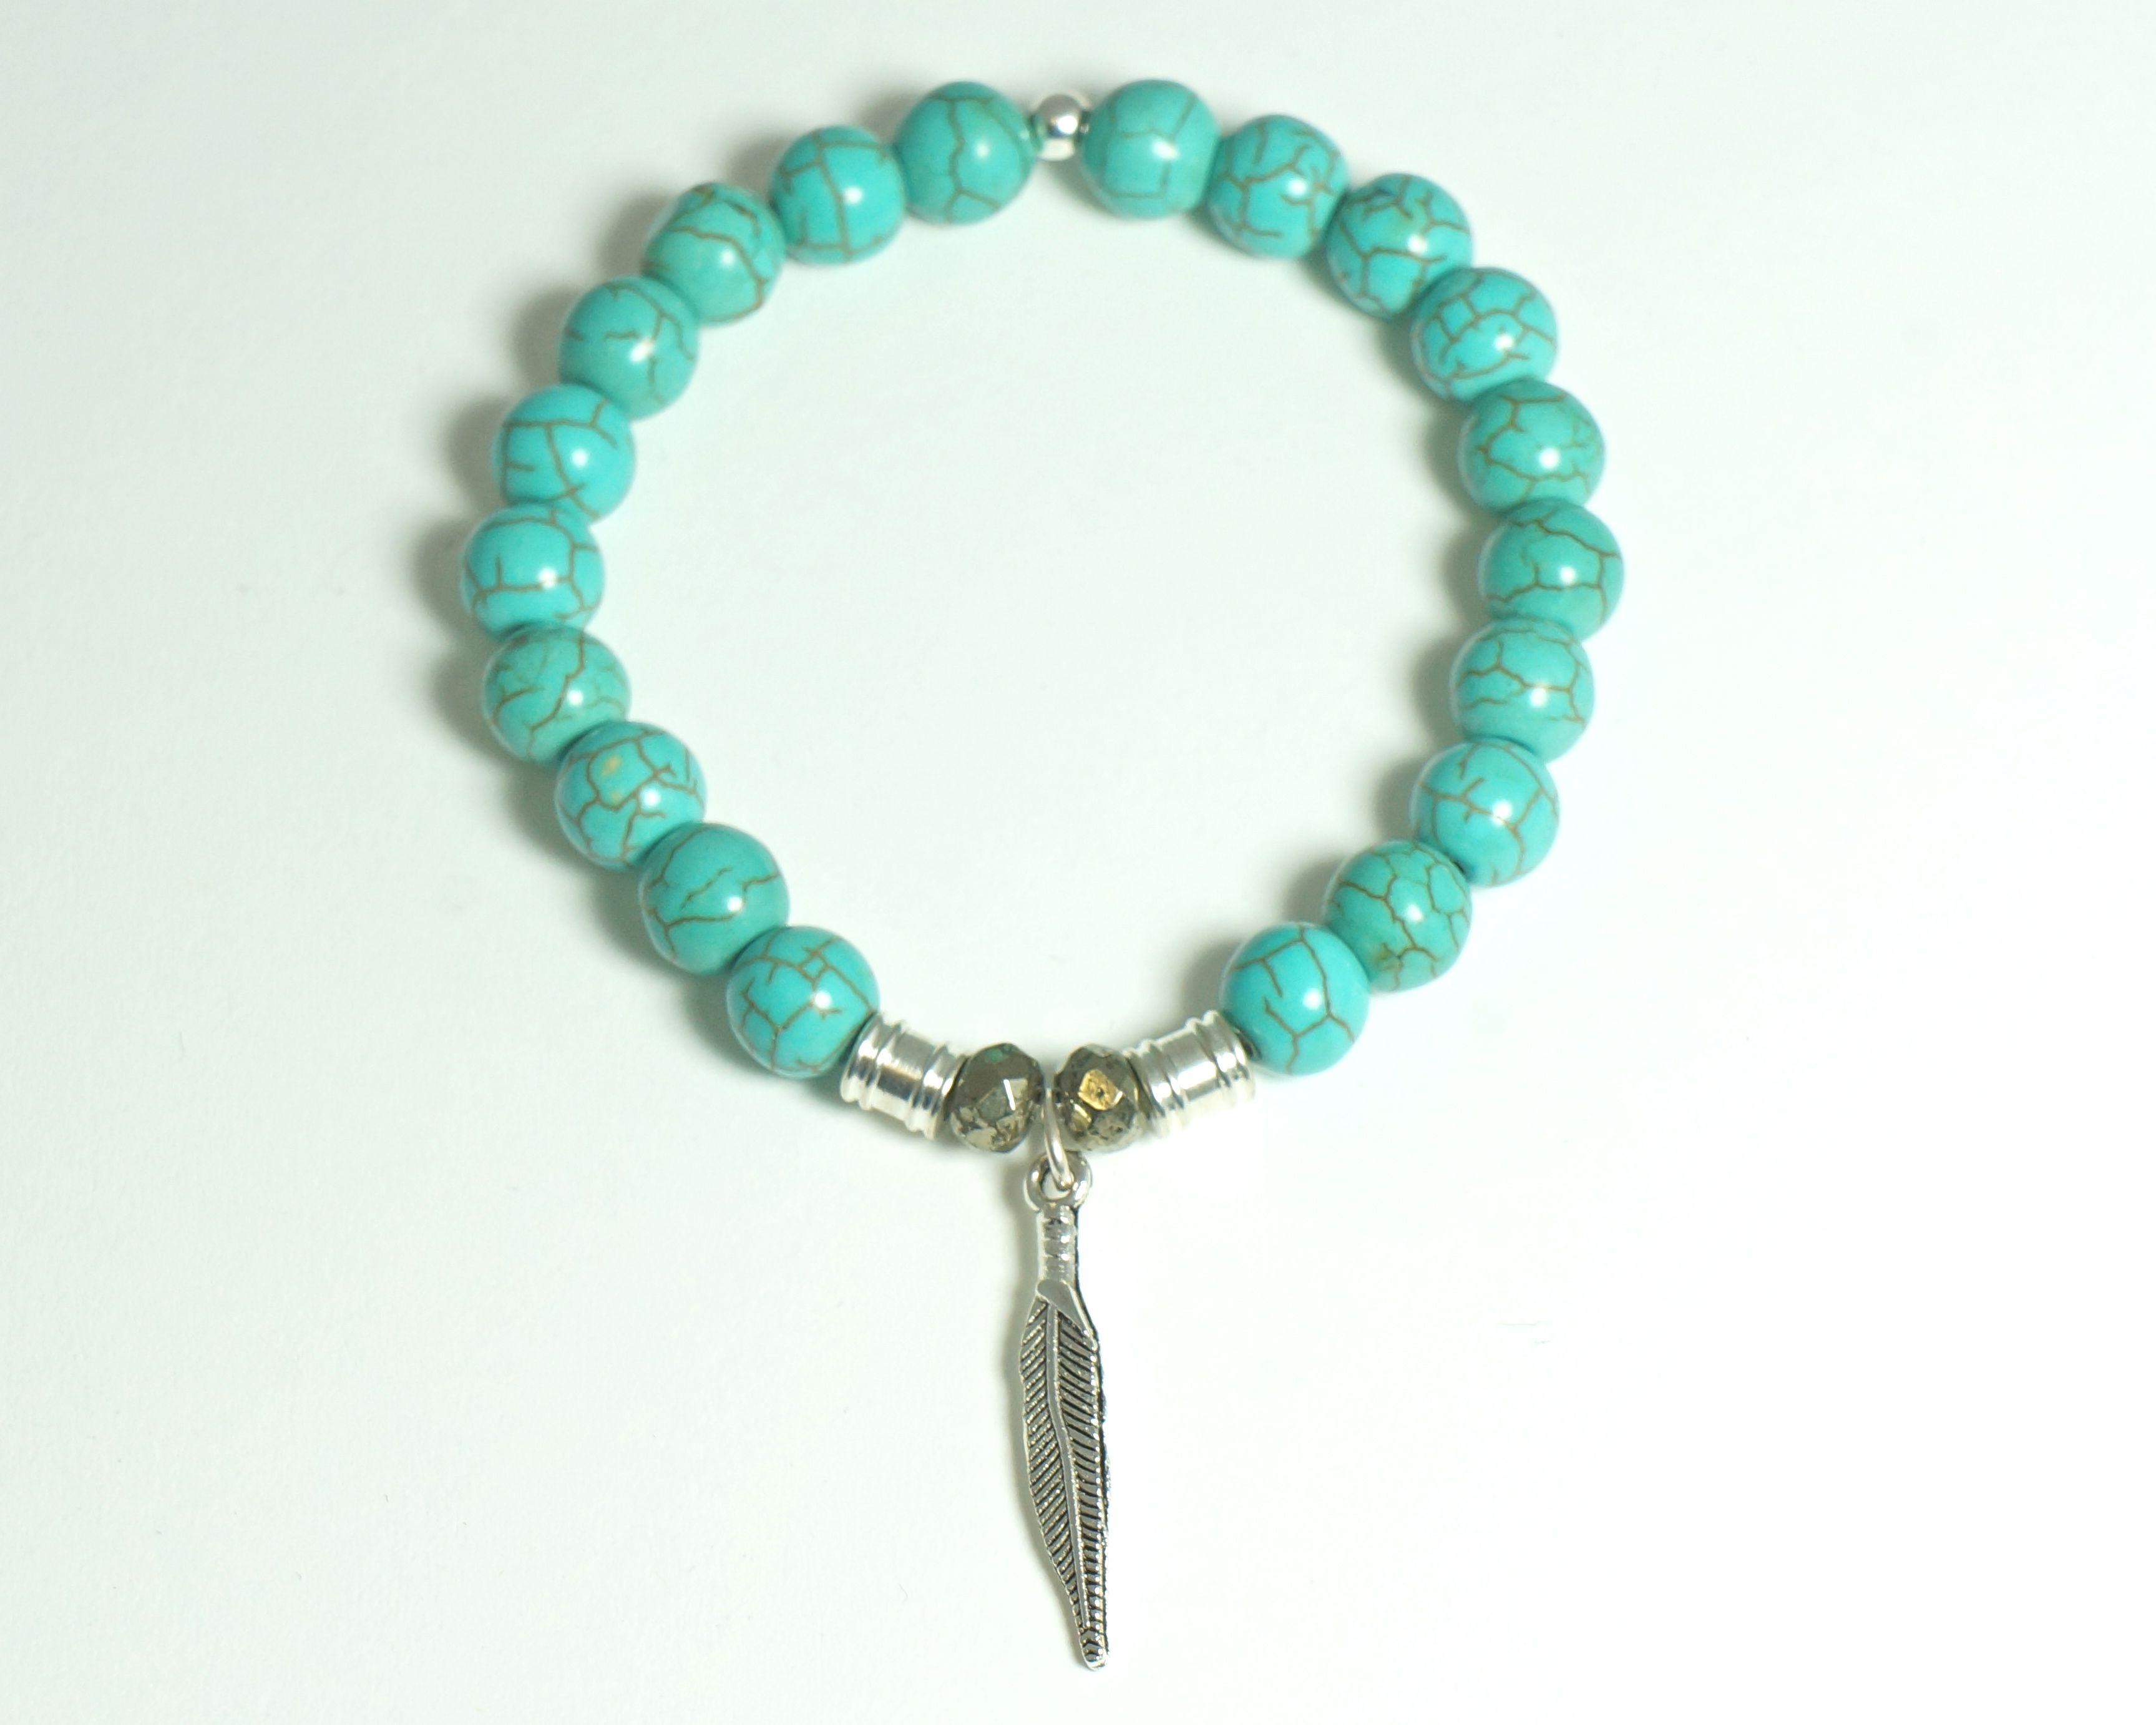 STUNNING HANDCRAFTED Turquoise semi-precious stone bracelet with native indian feather charm only $49.99!! www.tiffanyjazell... contact tiffanyjazelle@gmail.com